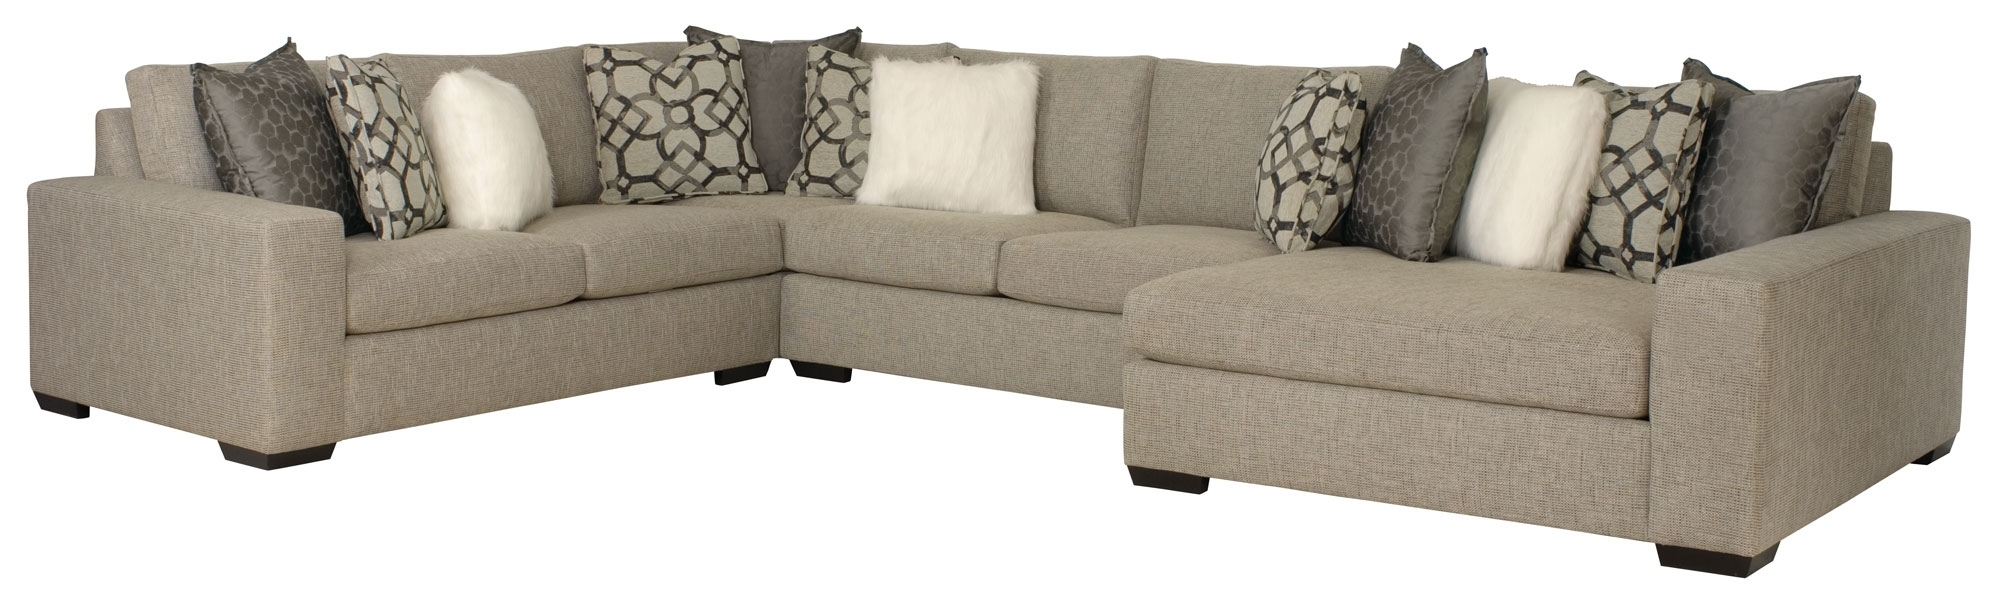 Sectional Sofas Orlando | Catosfera Pertaining To Orlando Sectional Sofas (View 1 of 10)